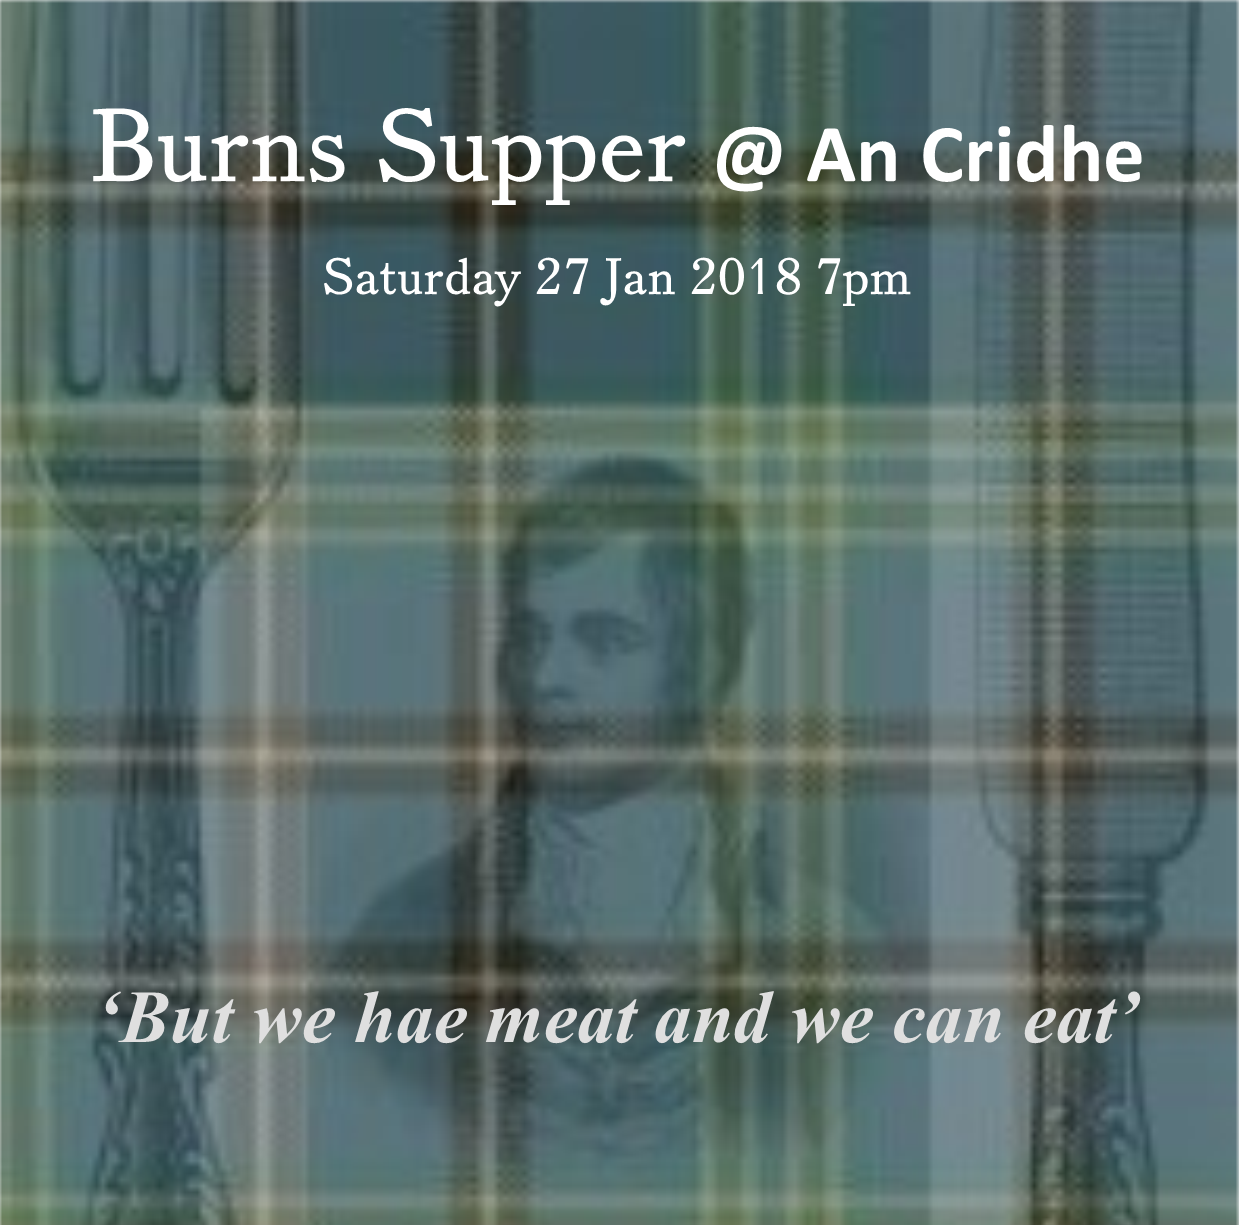 Burns supper with chef darran jamieson an cridhe for Burns supper order of service